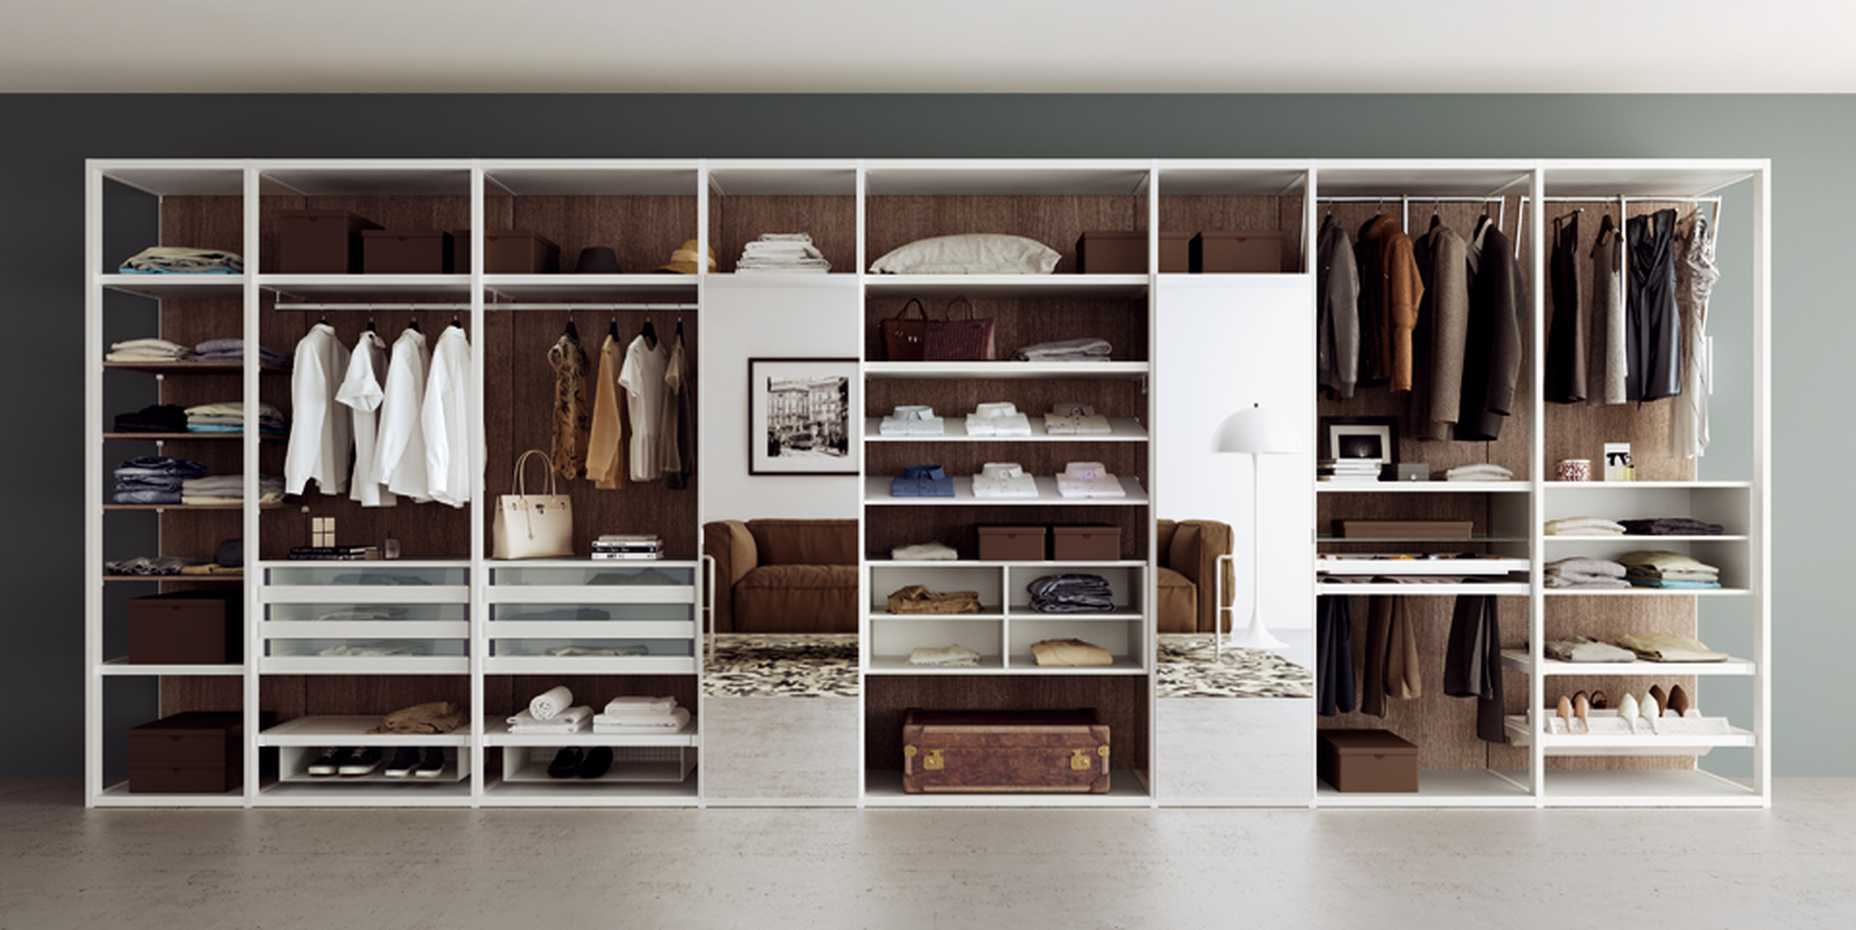 Walk-in Wardrobe with Framed Side by Mercantini product image 1